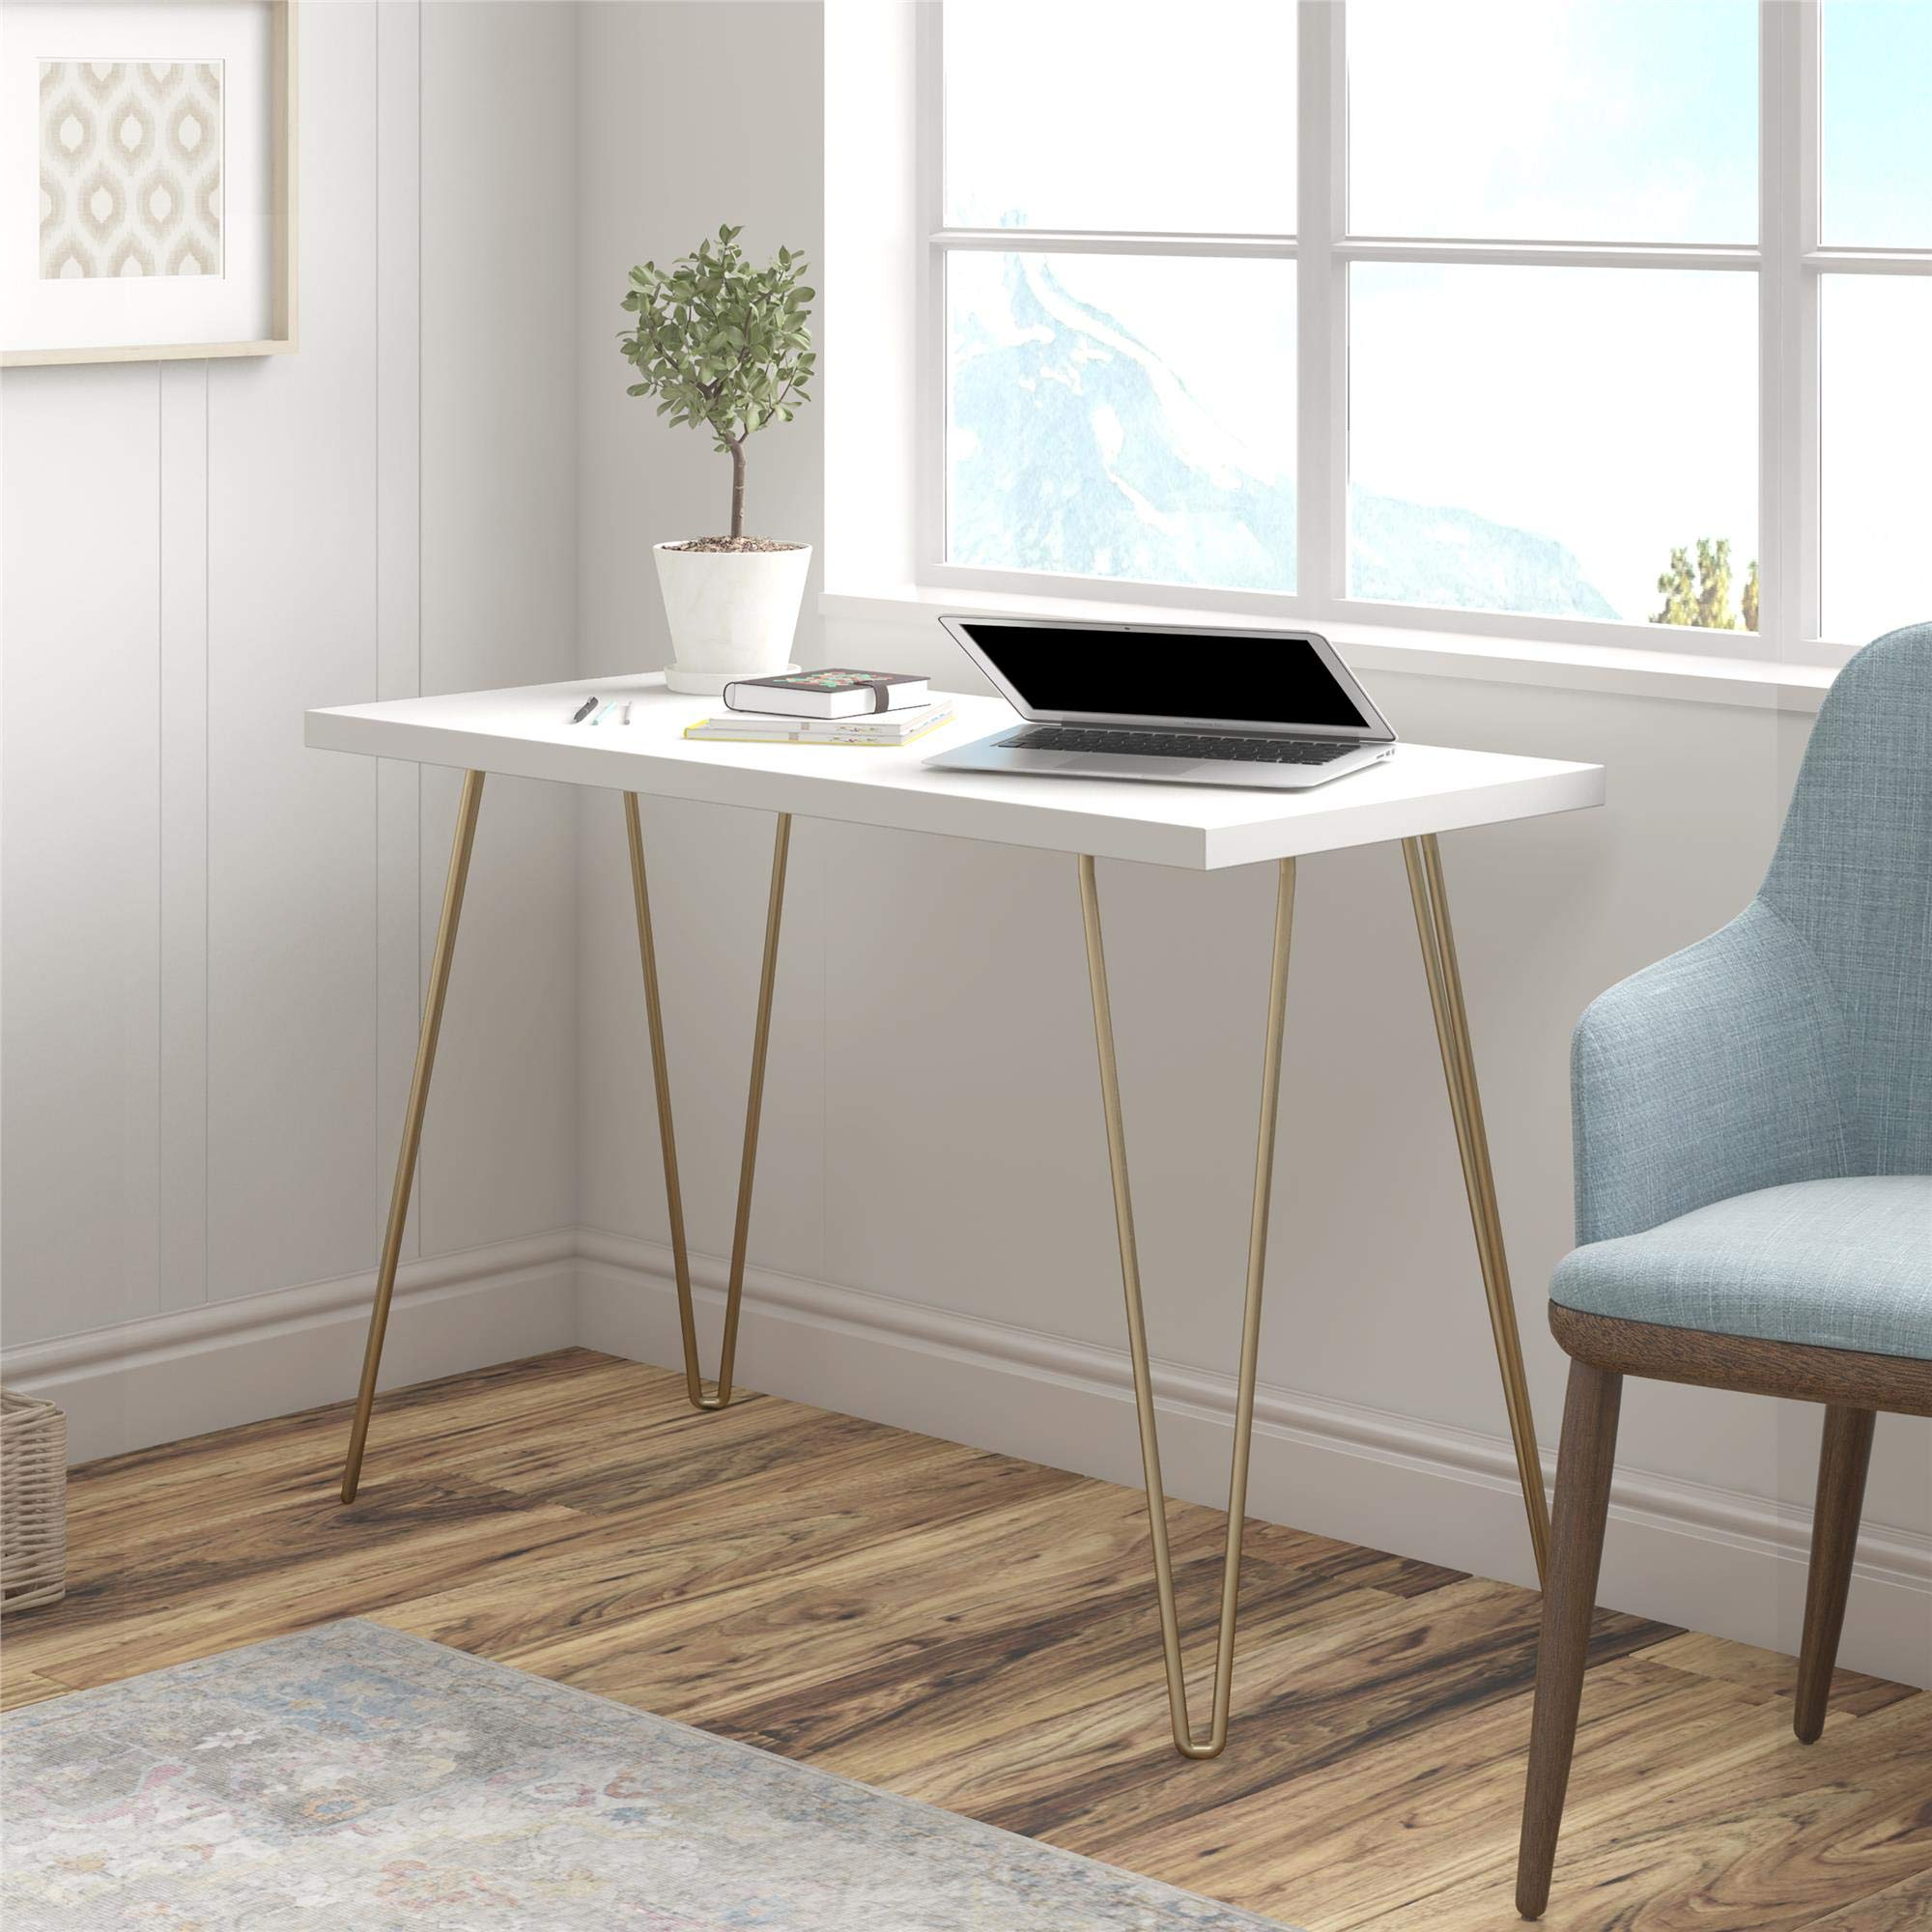 AmazonBasics Retro Hairpin Compact Computer Desk - Solid White with Matte Gold Legs by AmazonBasics (Image #2)